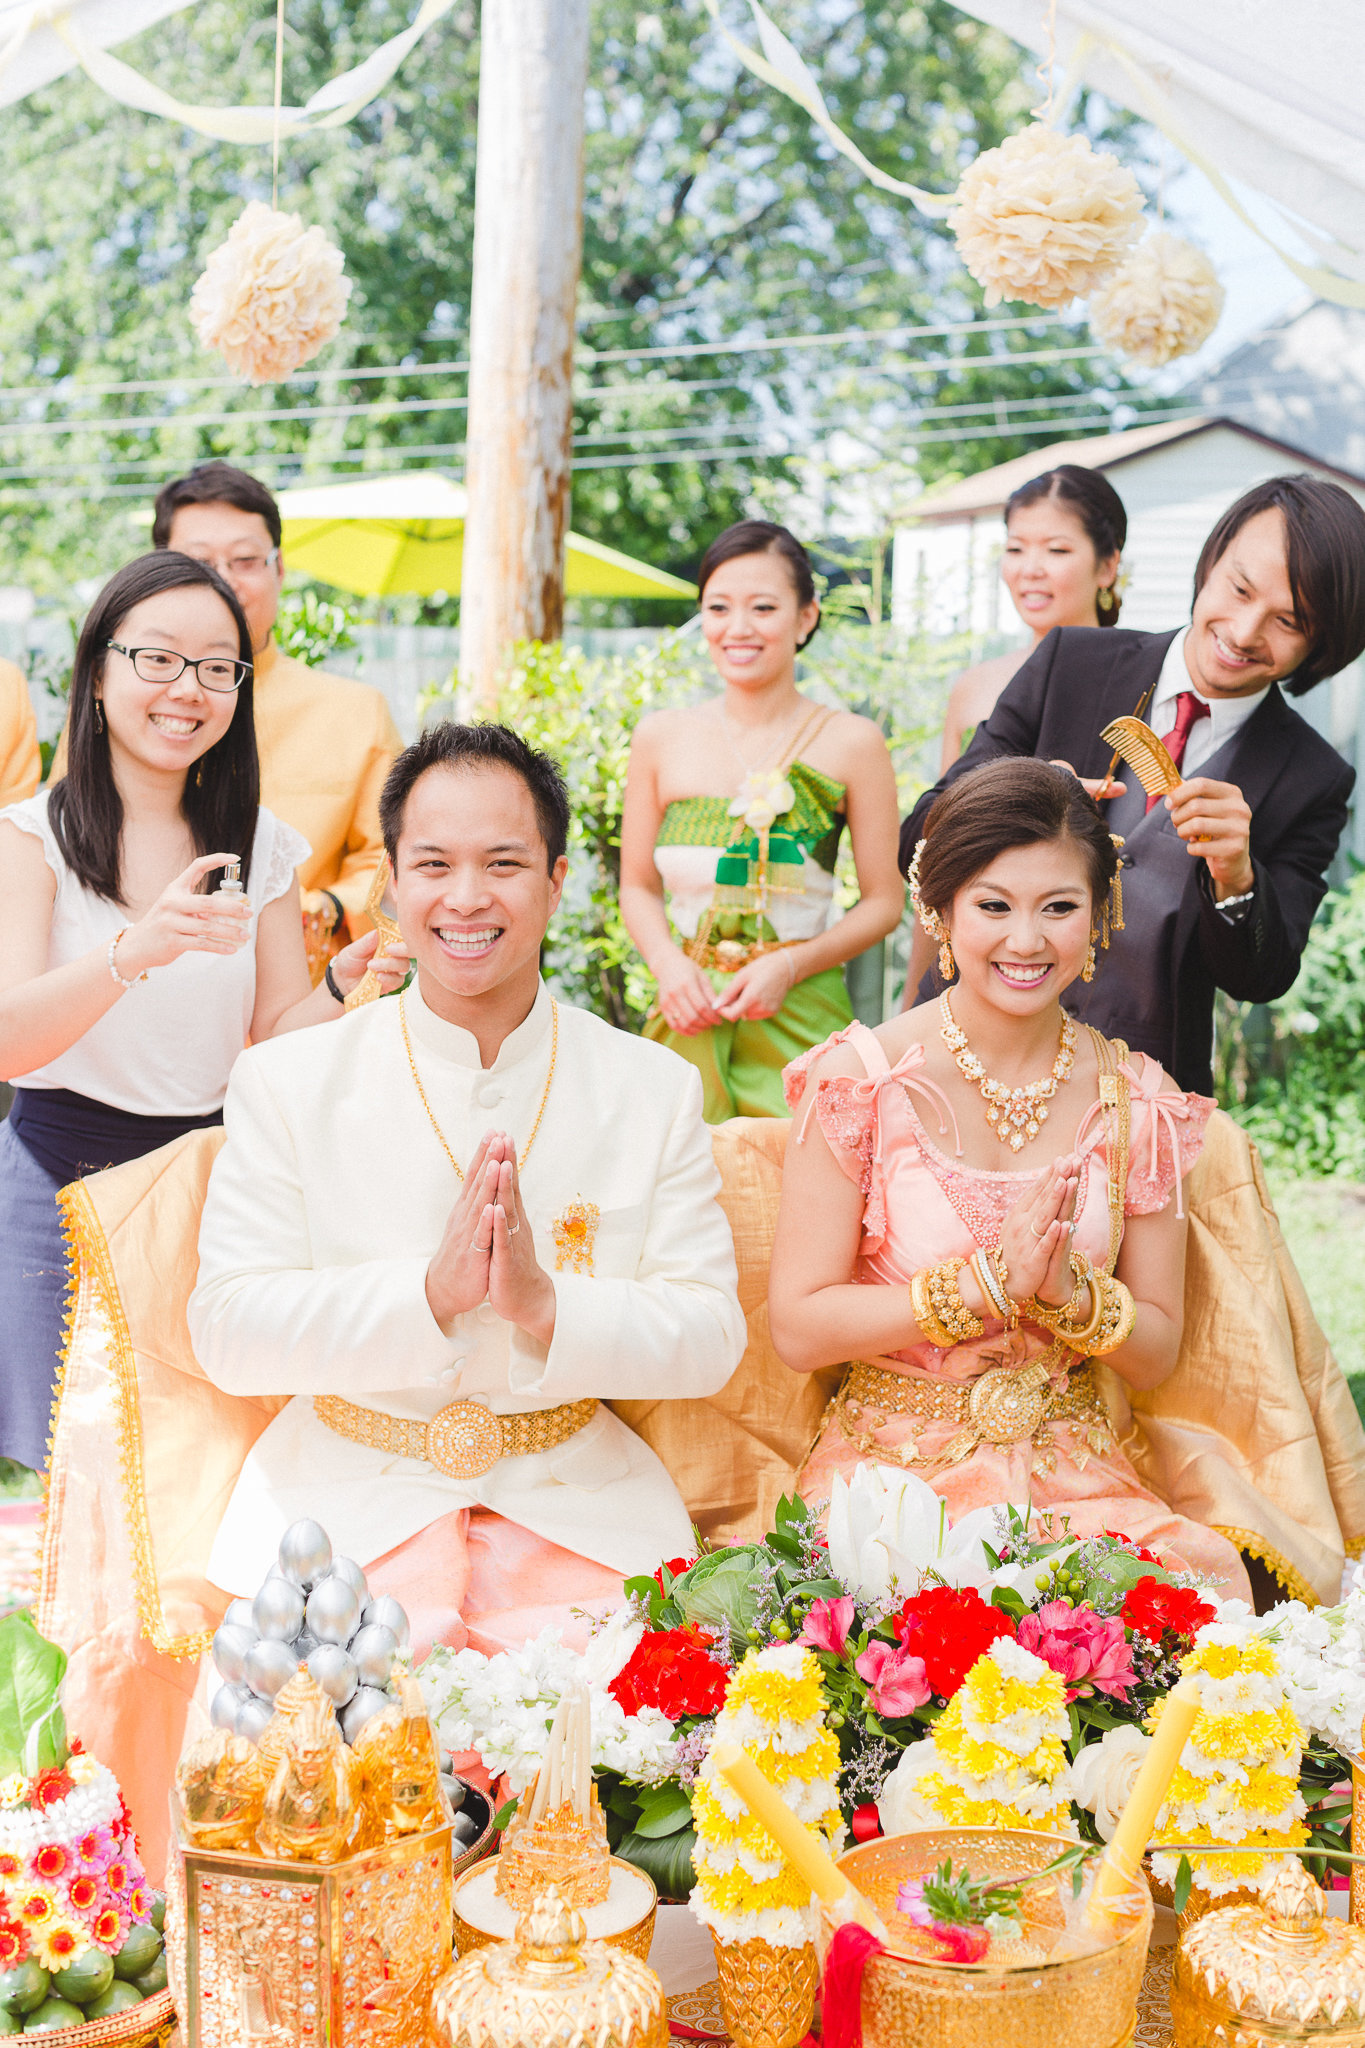 photographe-montreal-mariage-culturel-traditionnel-cambodgien-lisa-renault-photographie-traditional-cultural-cambodian-wedding-50